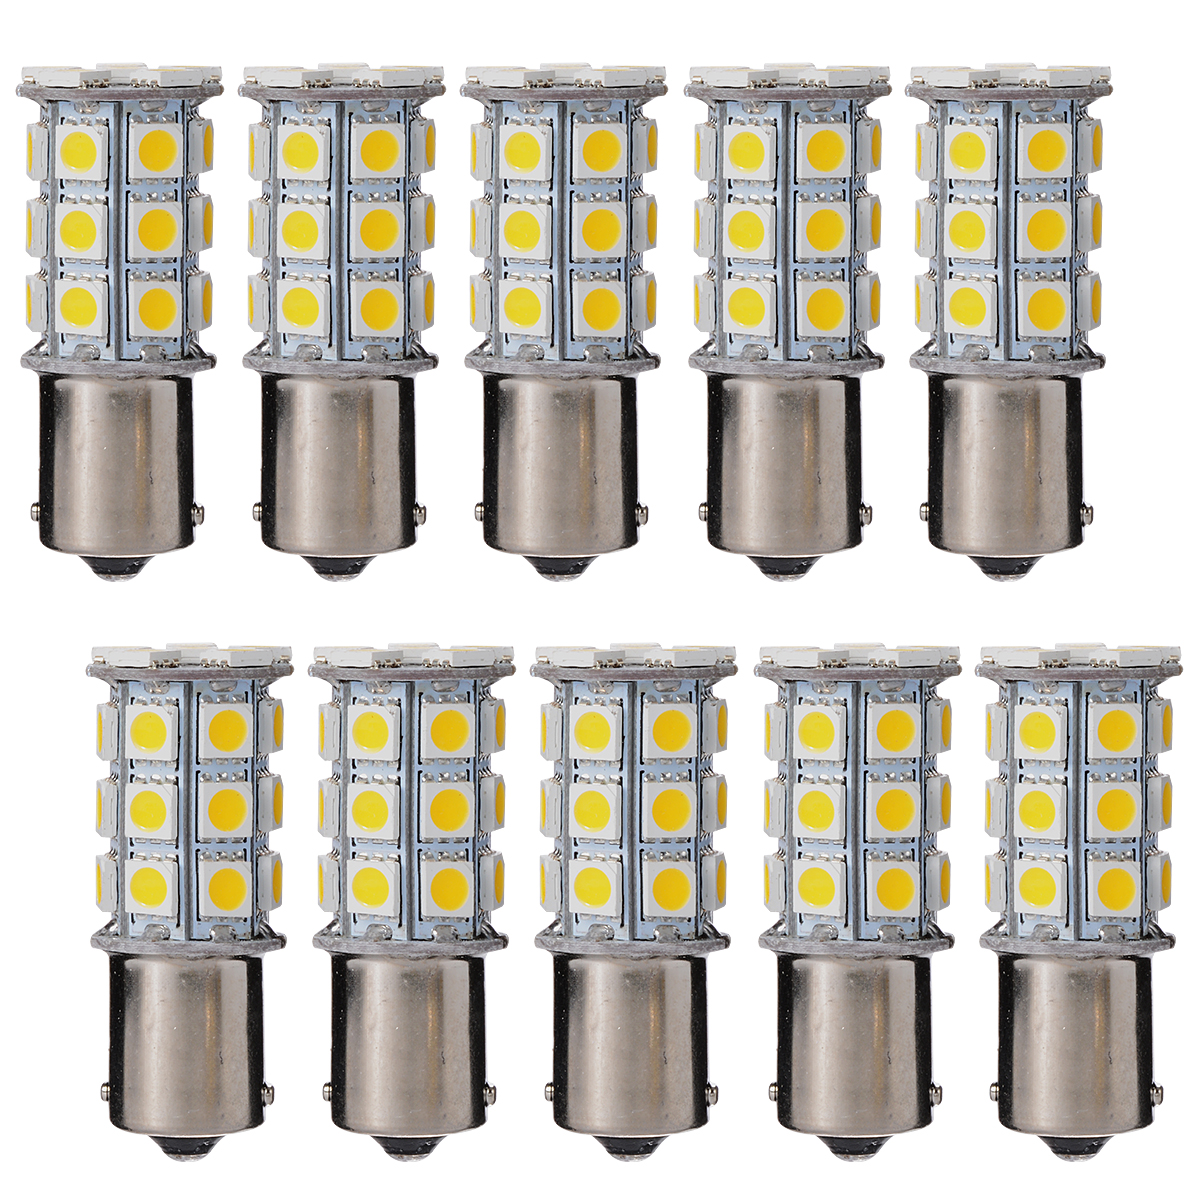 car styling 10pcs/lot 1156 Car Warm White 5050 SMD 27 LED Tail Brake Turn Signal Light Stop Light Bulb 12V MA238(China (Mainland))